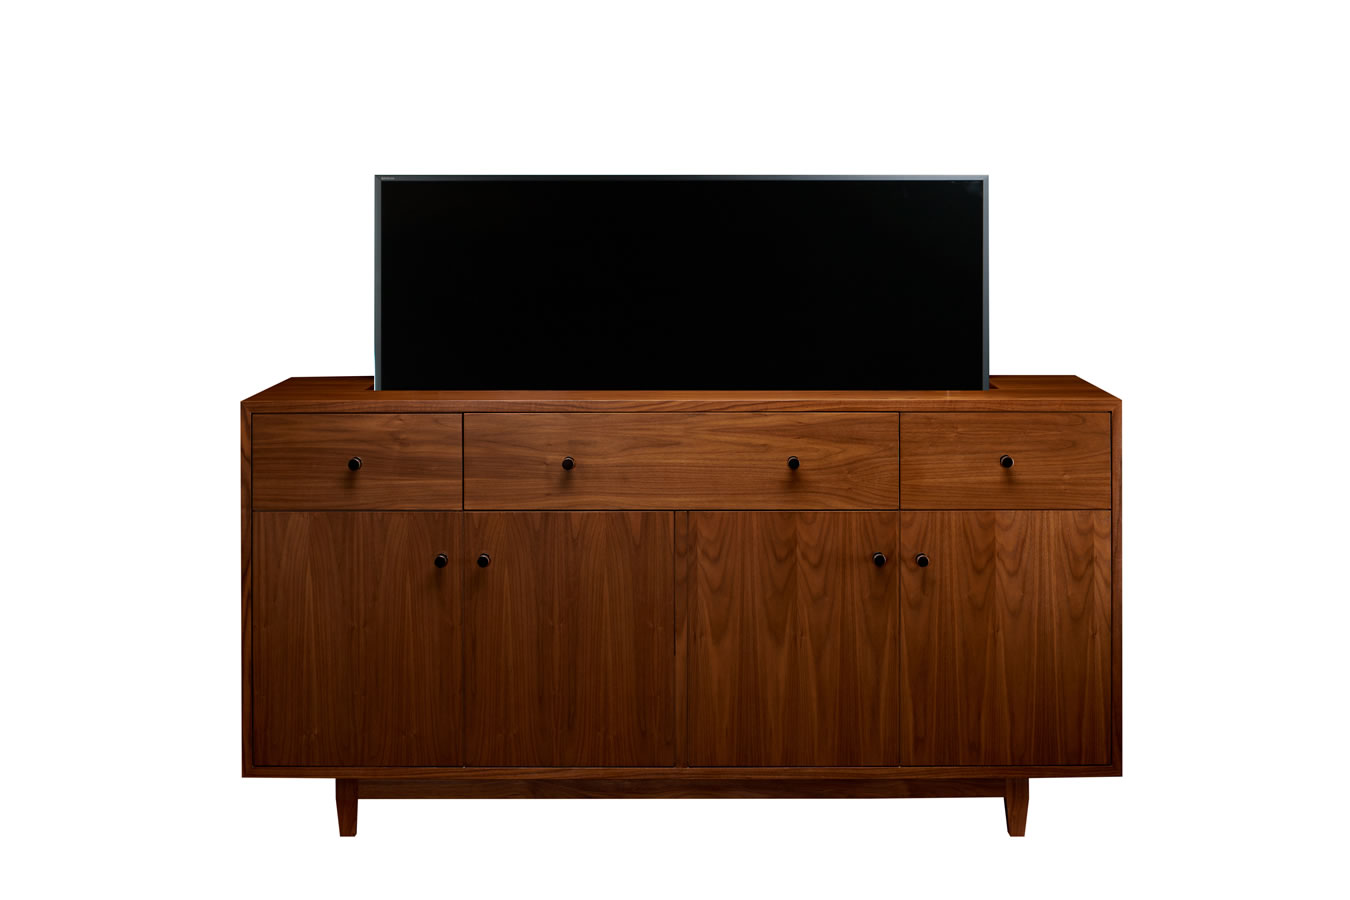 Mid-century walnut TV lift furniture hiding flat screen